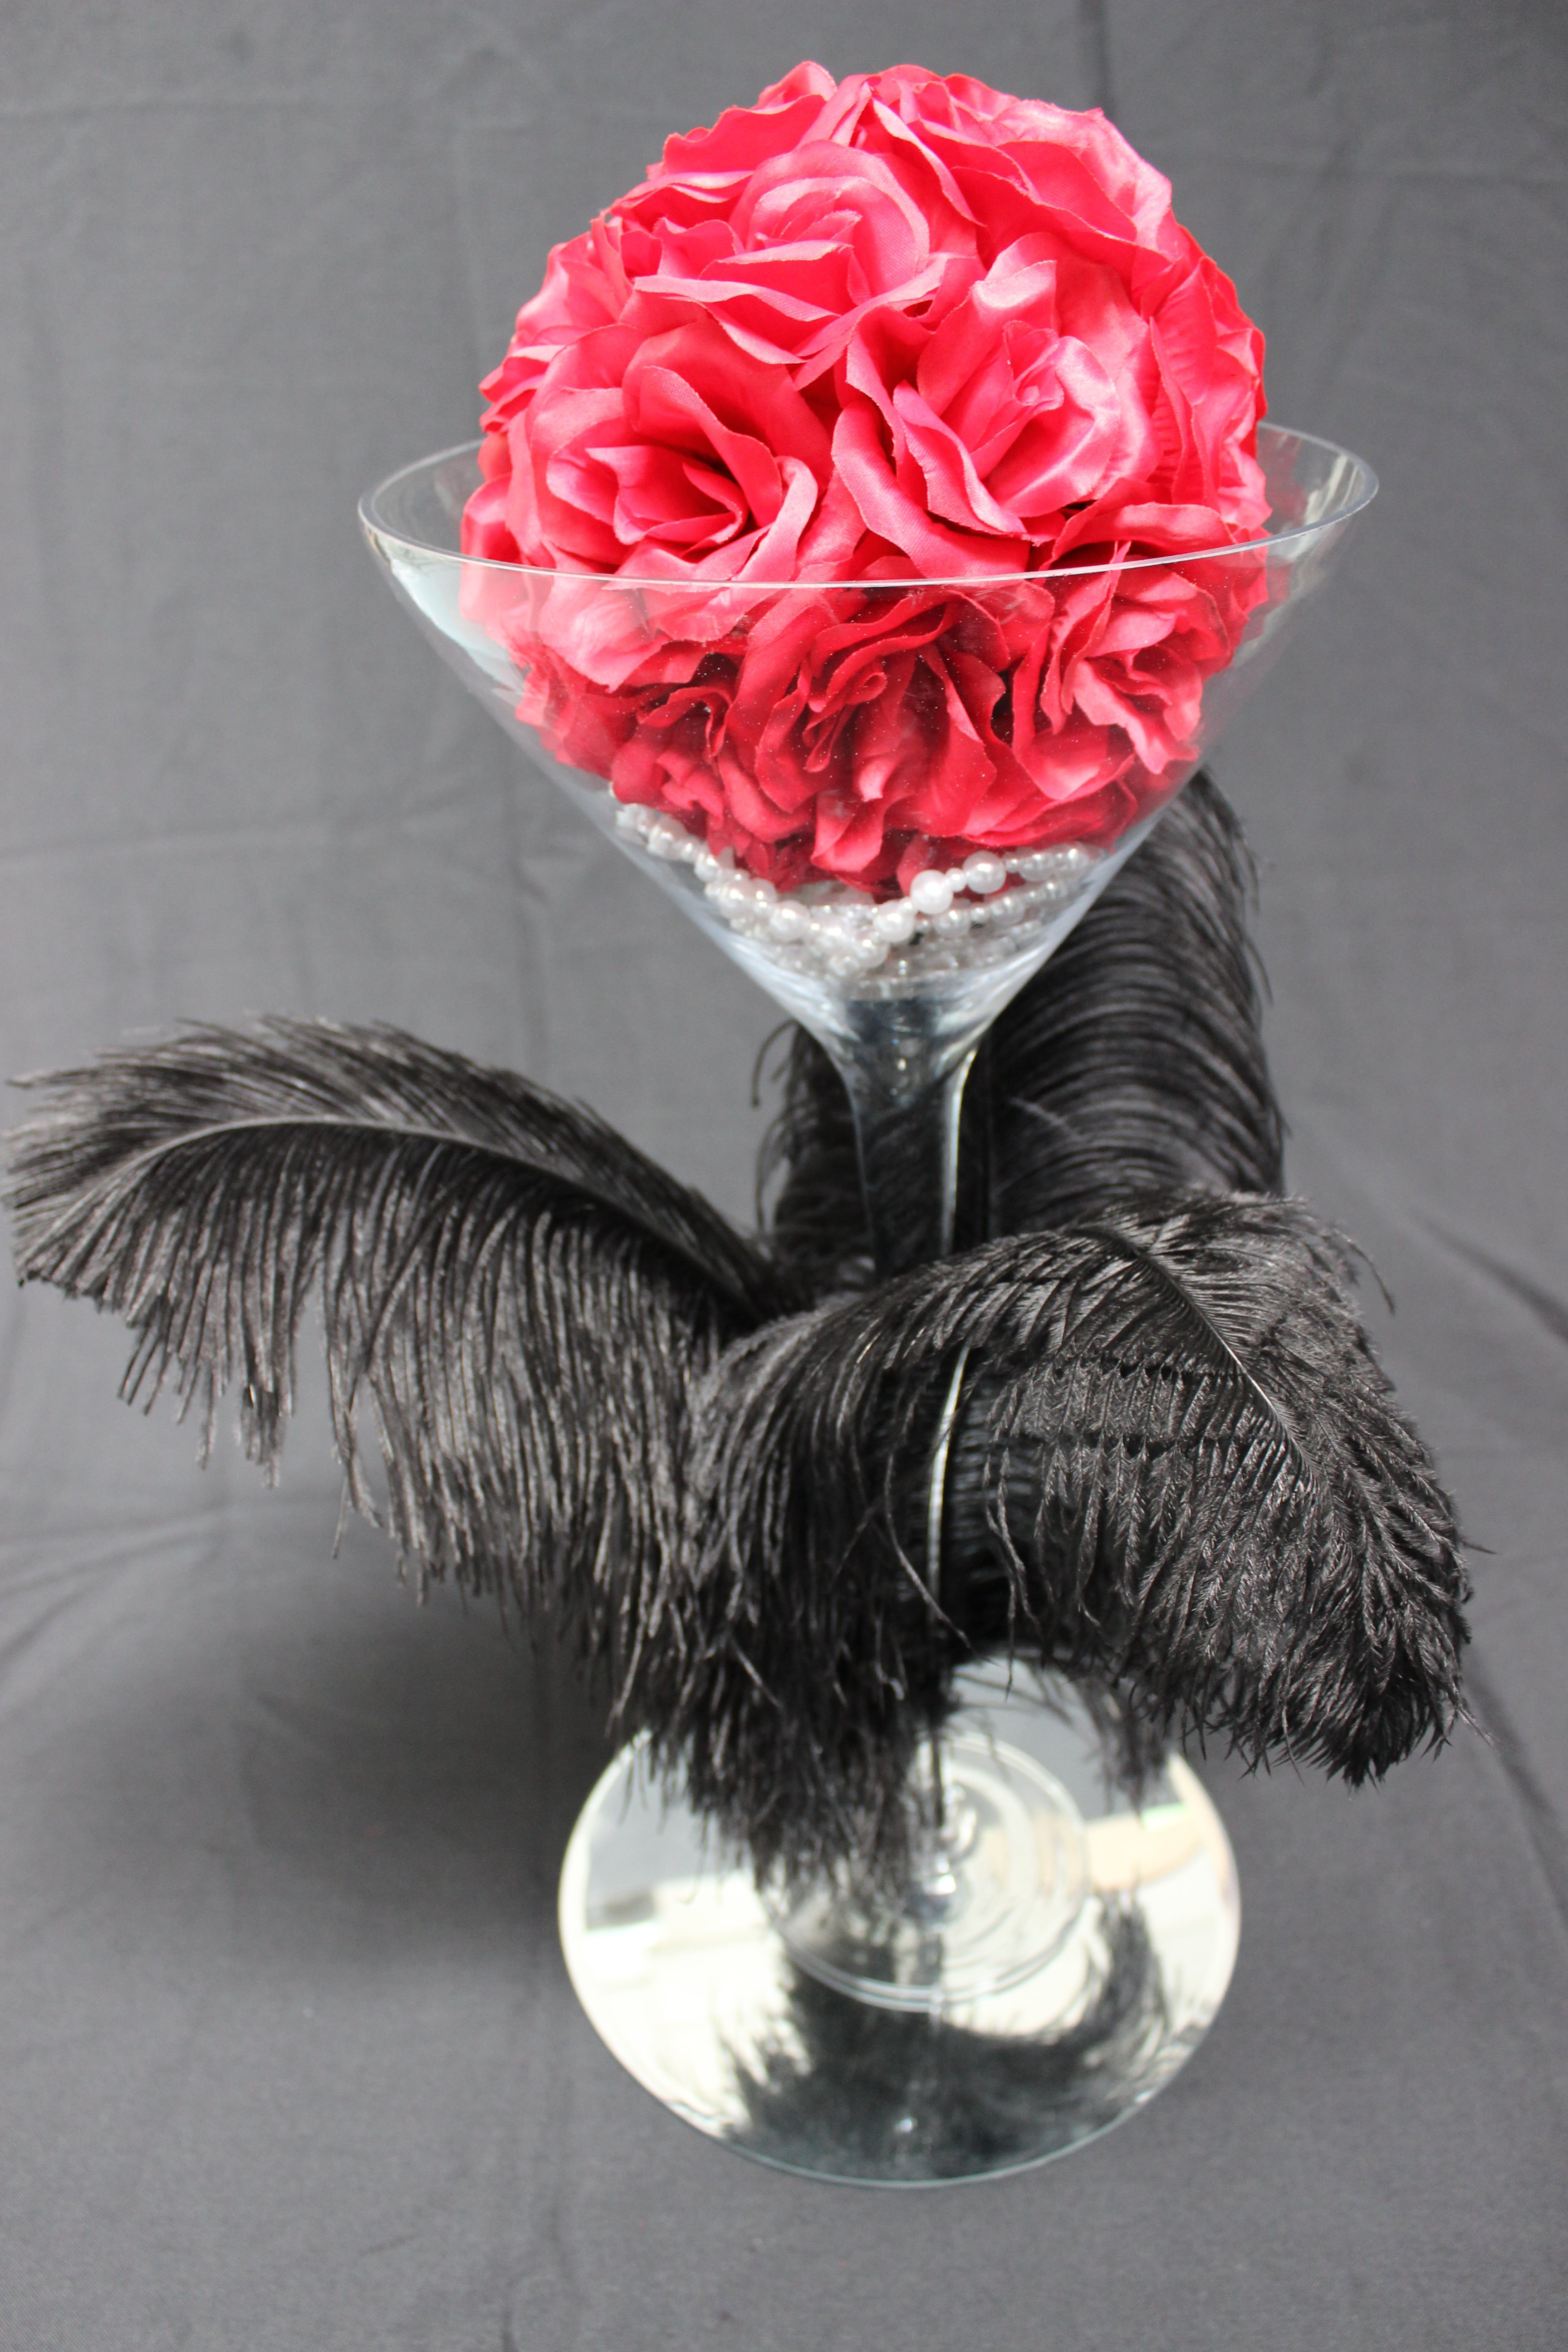 Martini ostrich feather centrepiece with pearls and roseball on mirror $25 incl gst